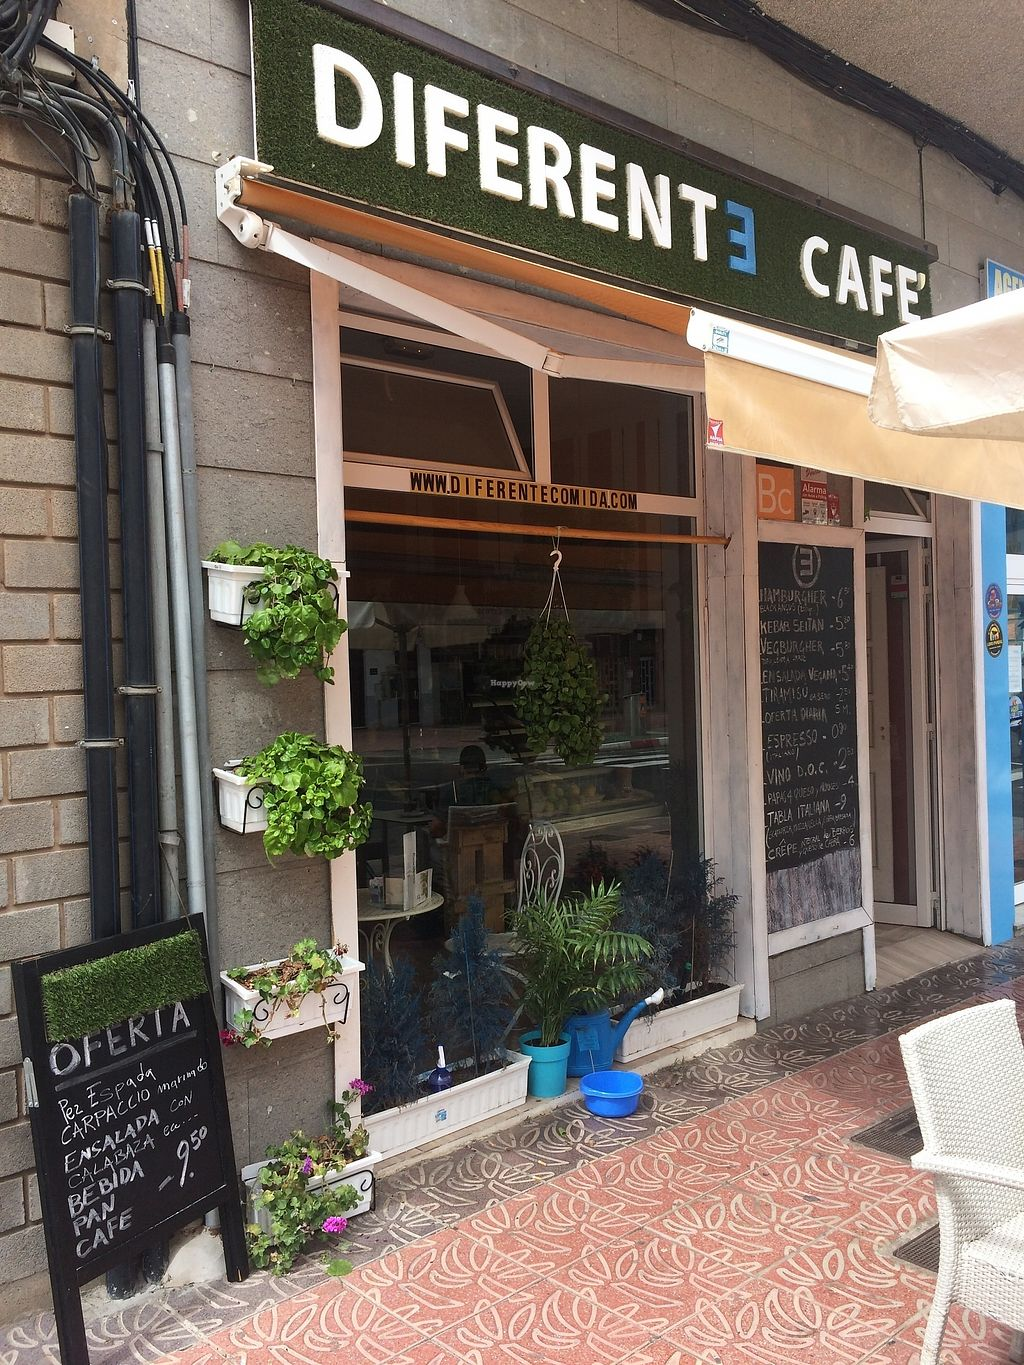 """Photo of Diferente Cafe  by <a href=""""/members/profile/KarlIanLewis"""">KarlIanLewis</a> <br/>Cafe front <br/> October 14, 2017  - <a href='/contact/abuse/image/102137/315057'>Report</a>"""